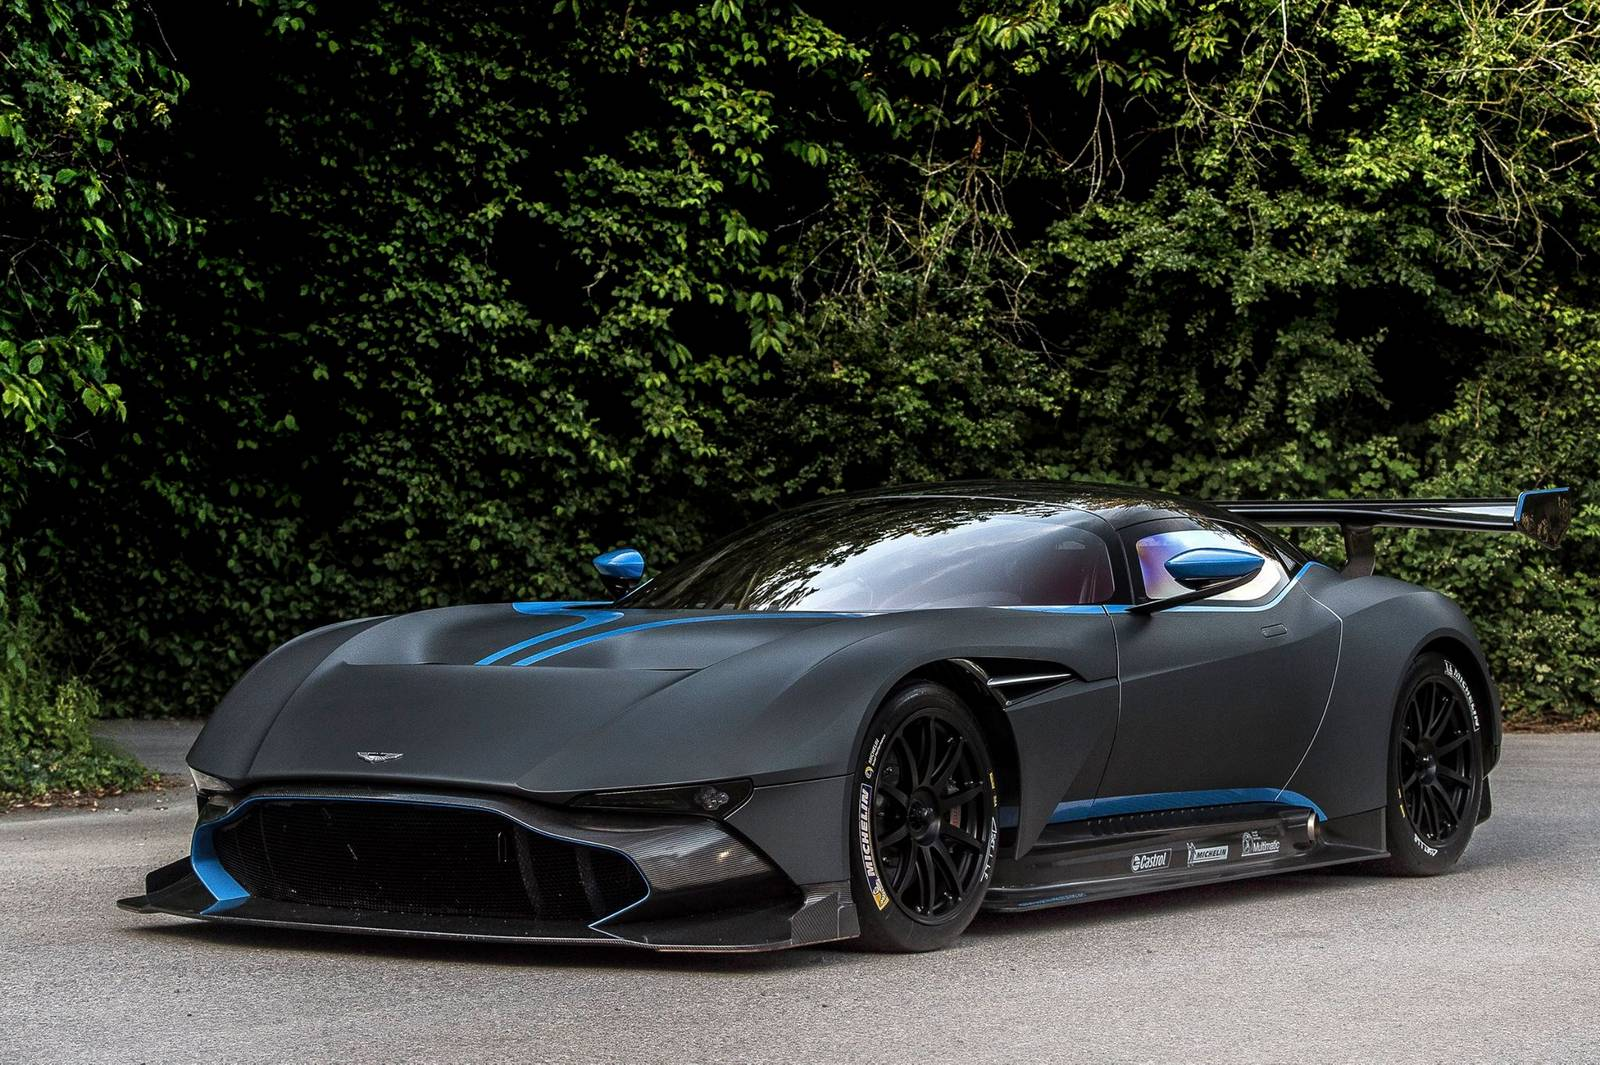 Goodwood 2015: Black Aston Martin Vulcan